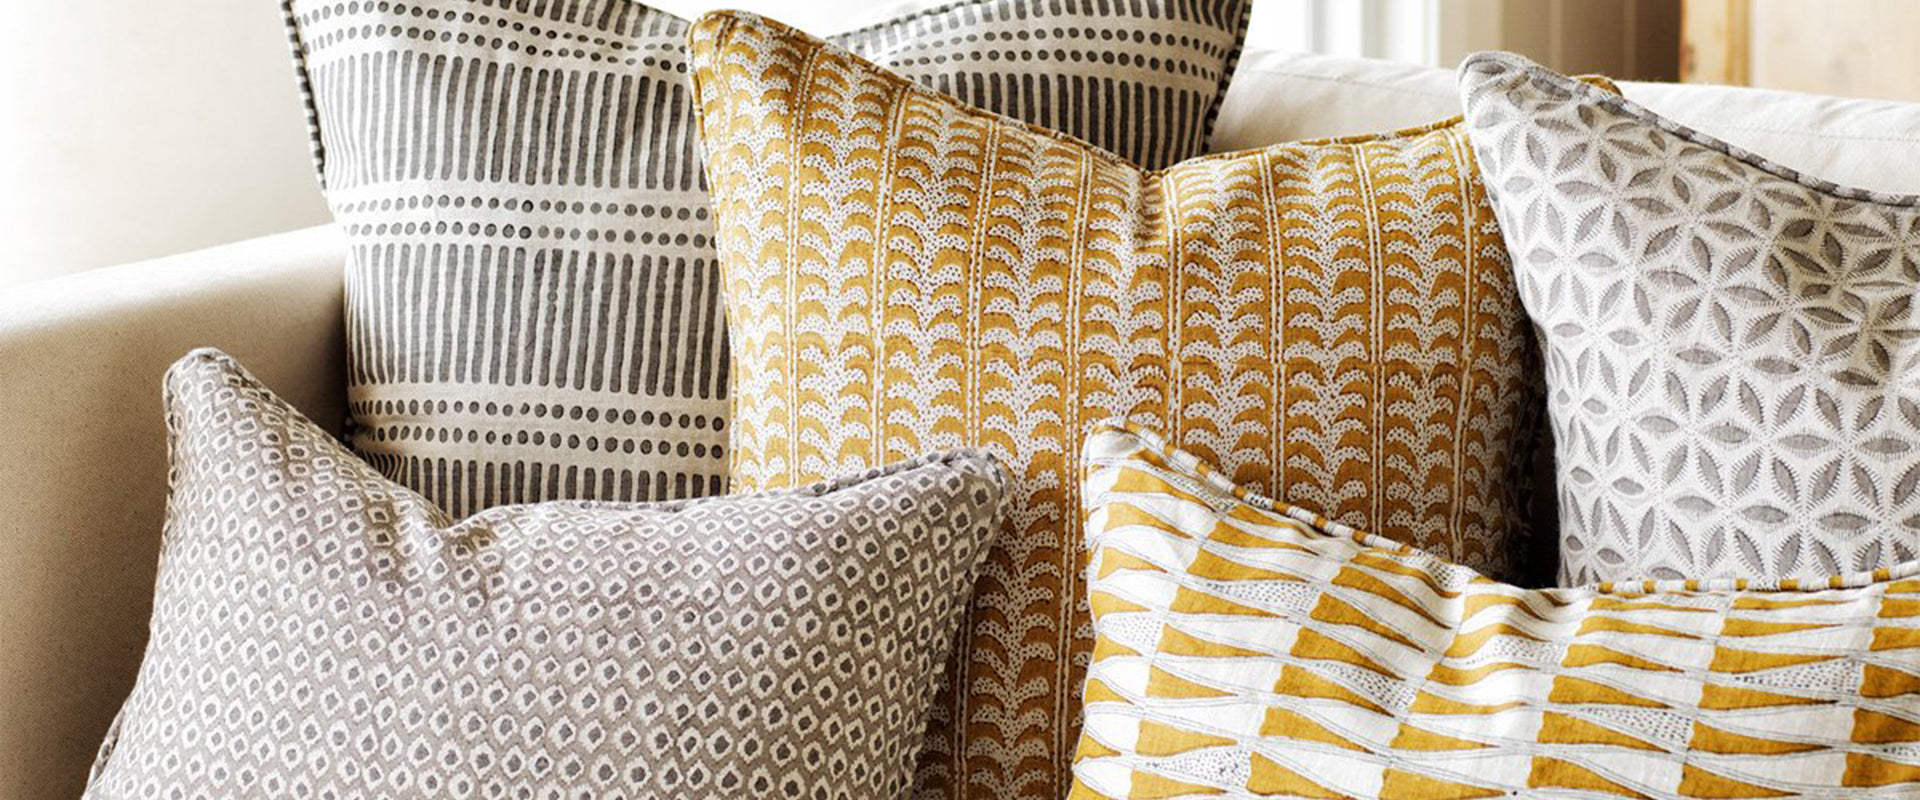 Walter_G_hand_Printed_textiles